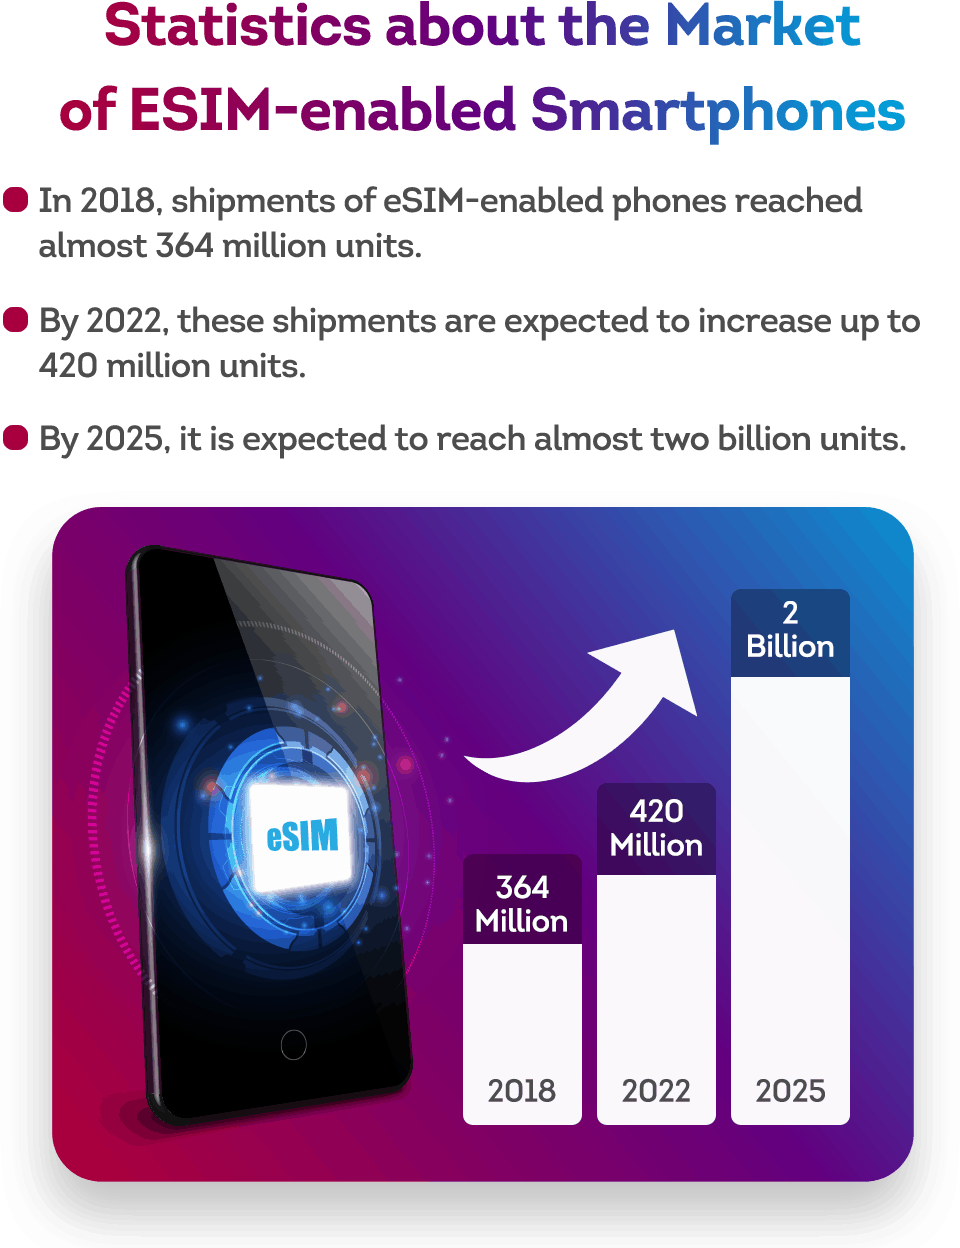 statistics about the embedded SIM market